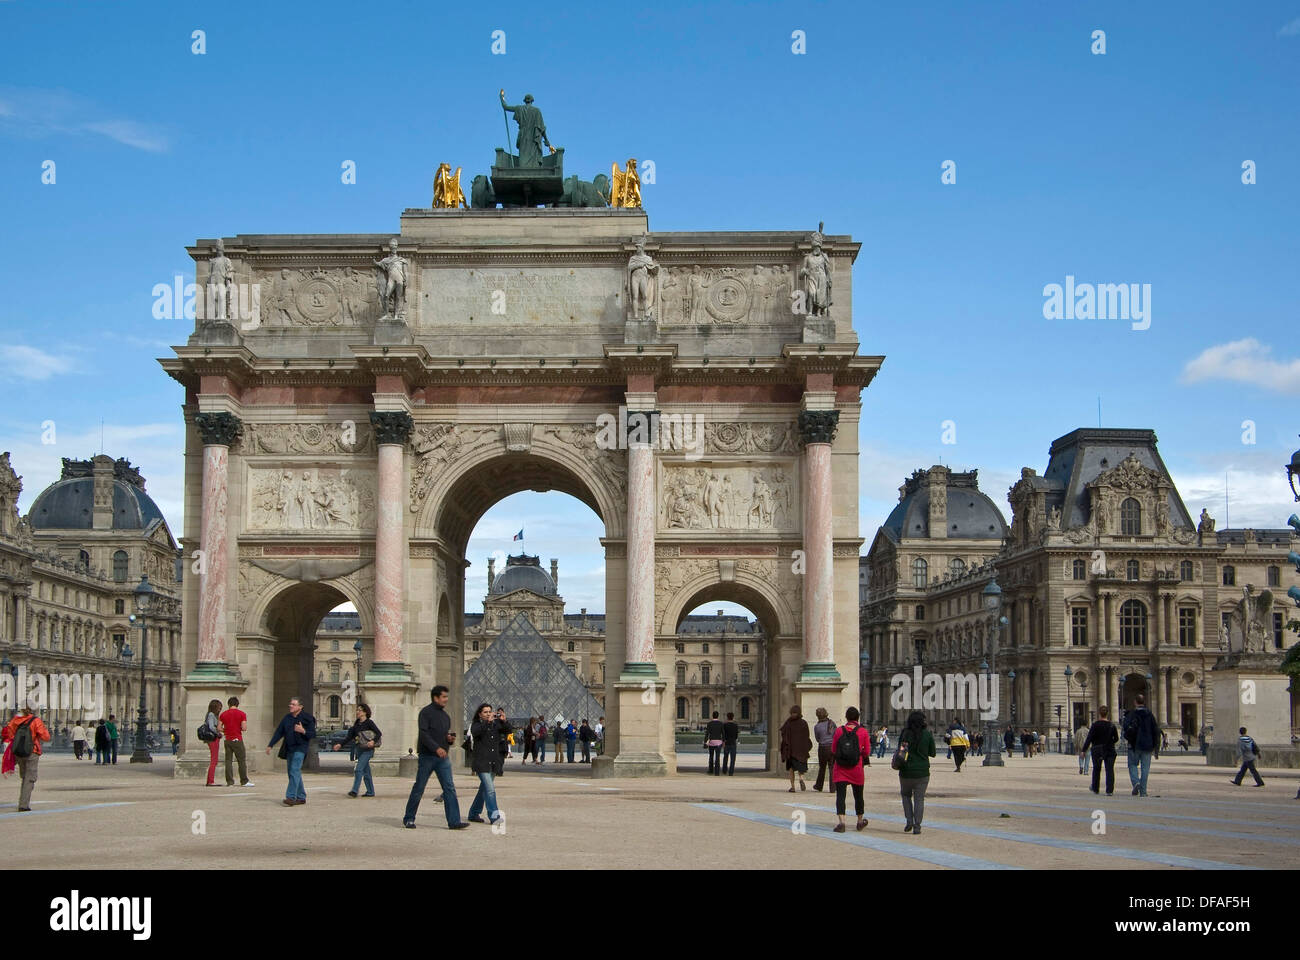 Arc De Triomphe In Paris Commemorating The Military